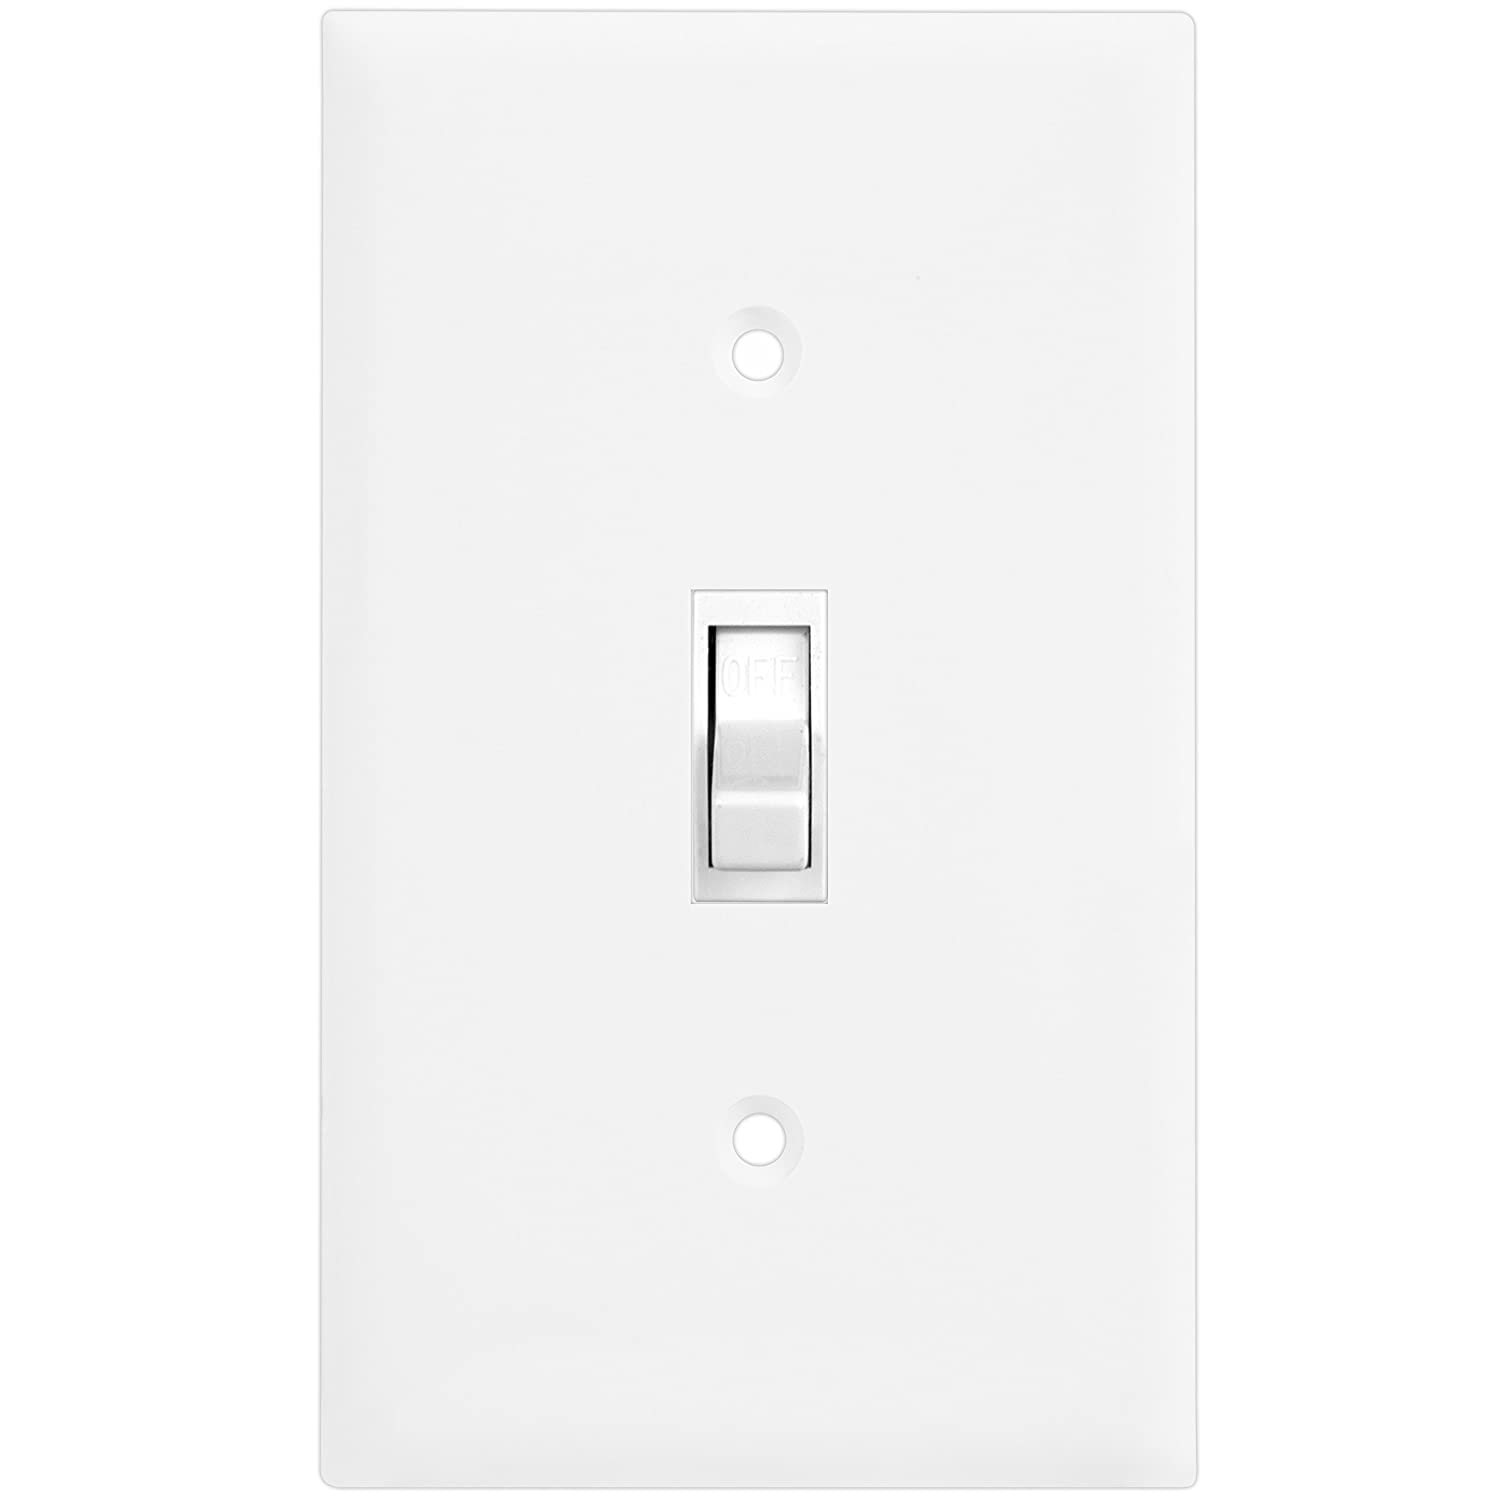 8811O-W Polycarbonate Thermoplastic White Over-Size 1-Gang 5.5 x 3.5 ENERLITES Toggle Light Switch Wall Plate Over-Size 1-Gang 5.5 x 3.5